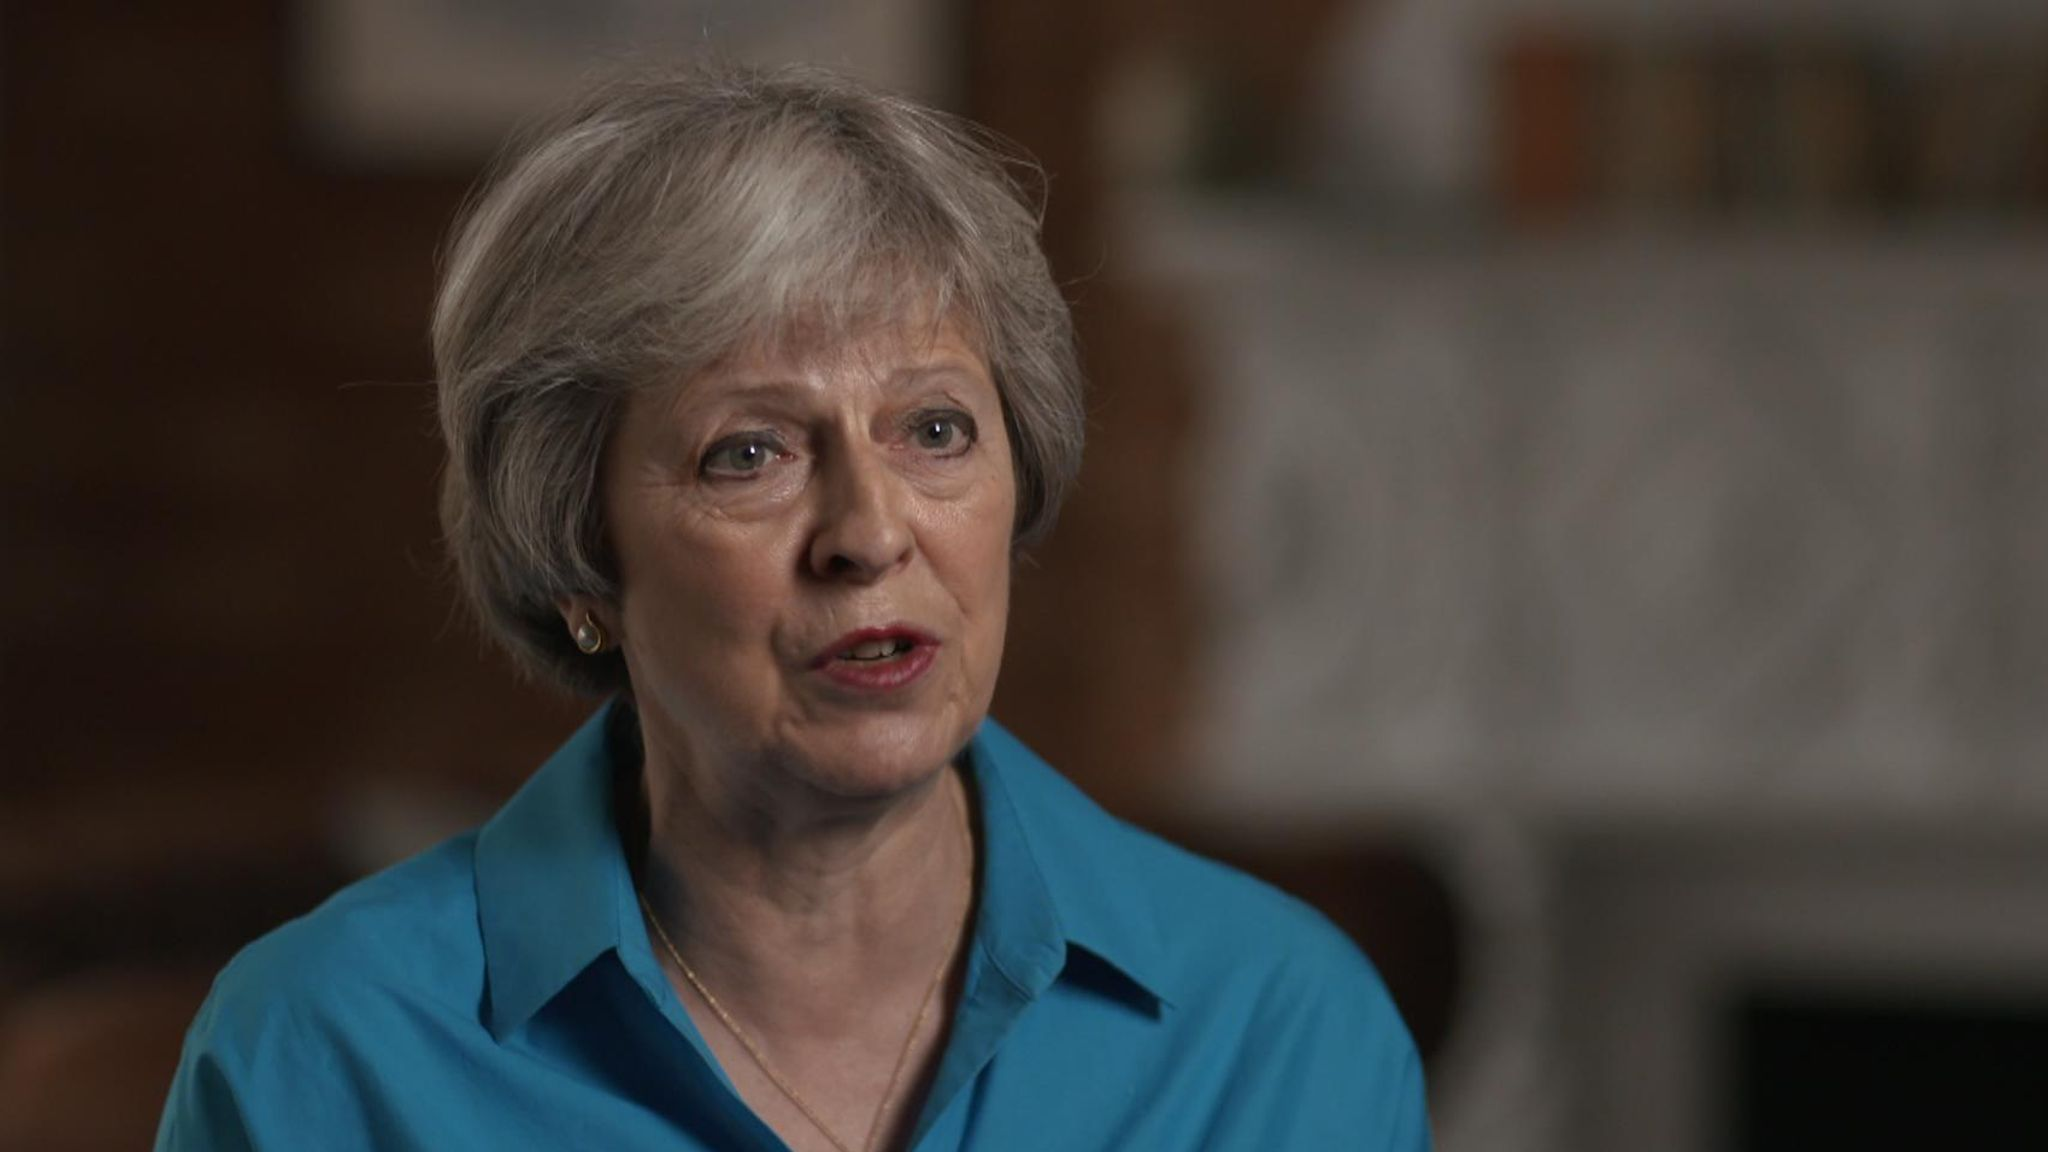 Theresa May interview with Sky News